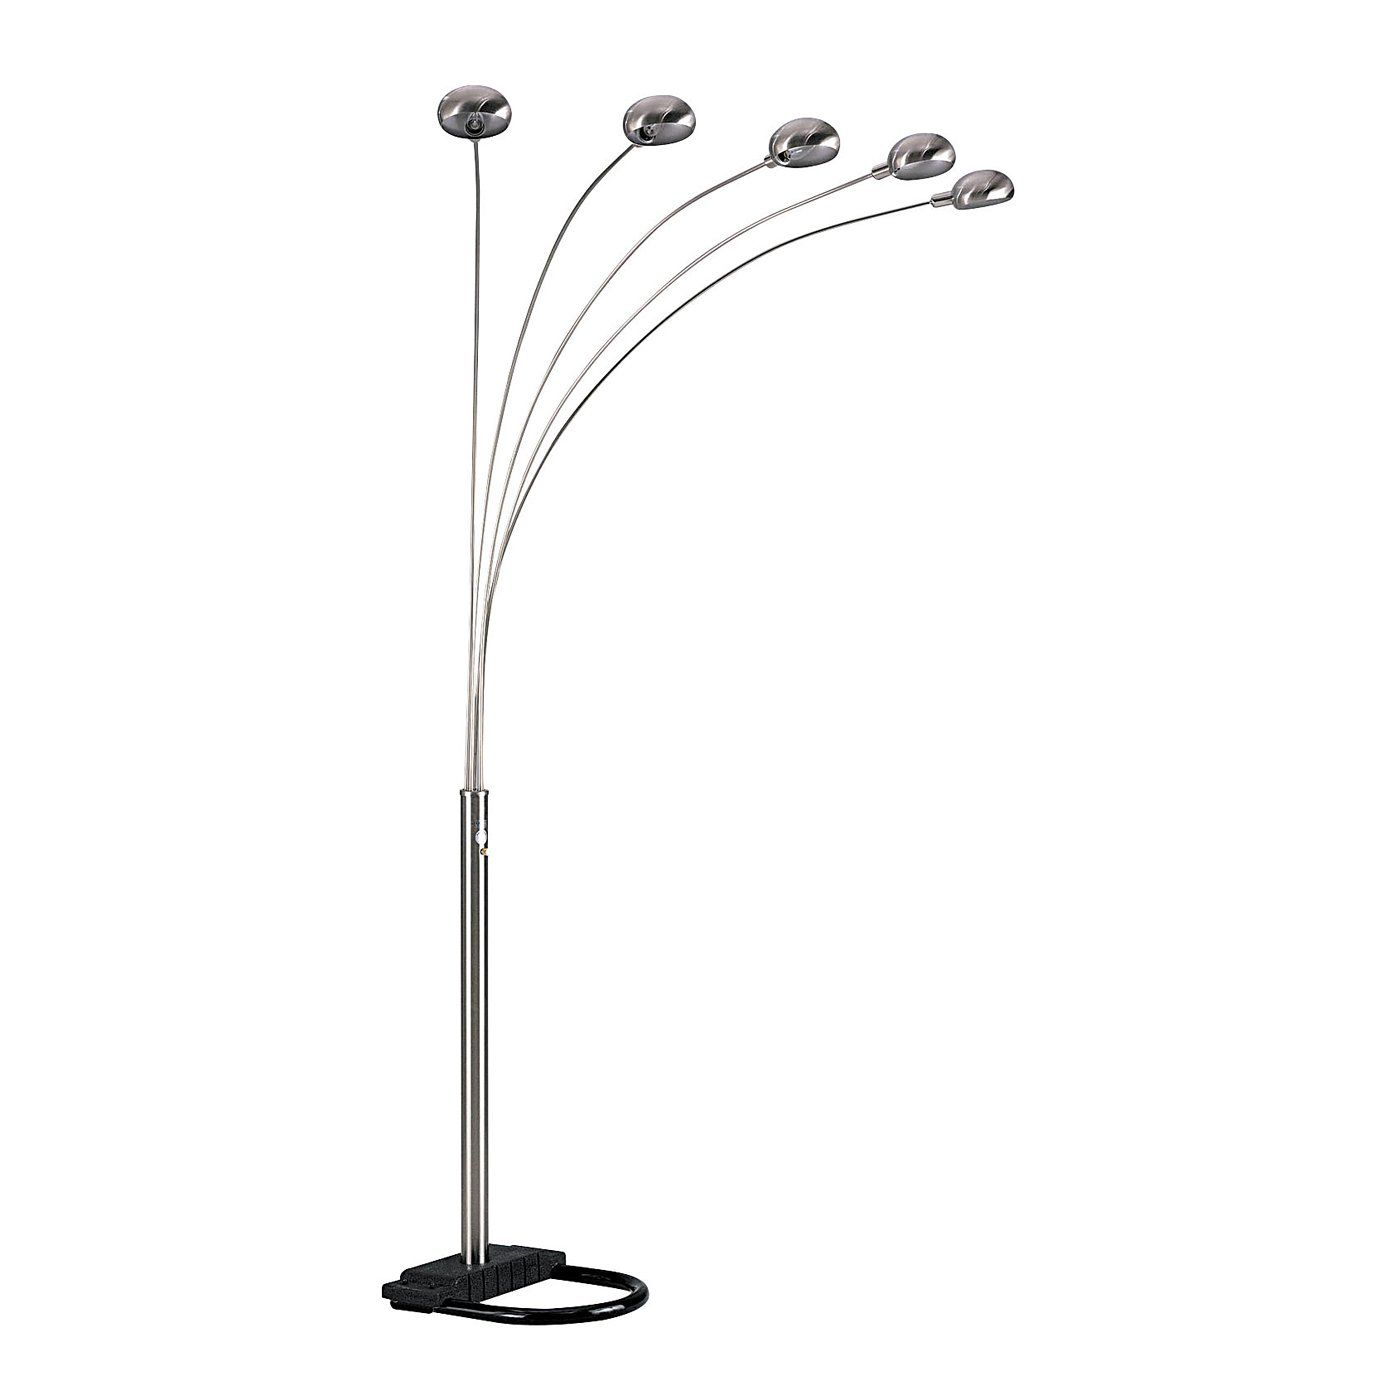 Ore International 6962 Five Arms Arch Floor Lamp Atg Stores Arched Floor Lamp Nickel Floor Lamp Black Floor Lamp